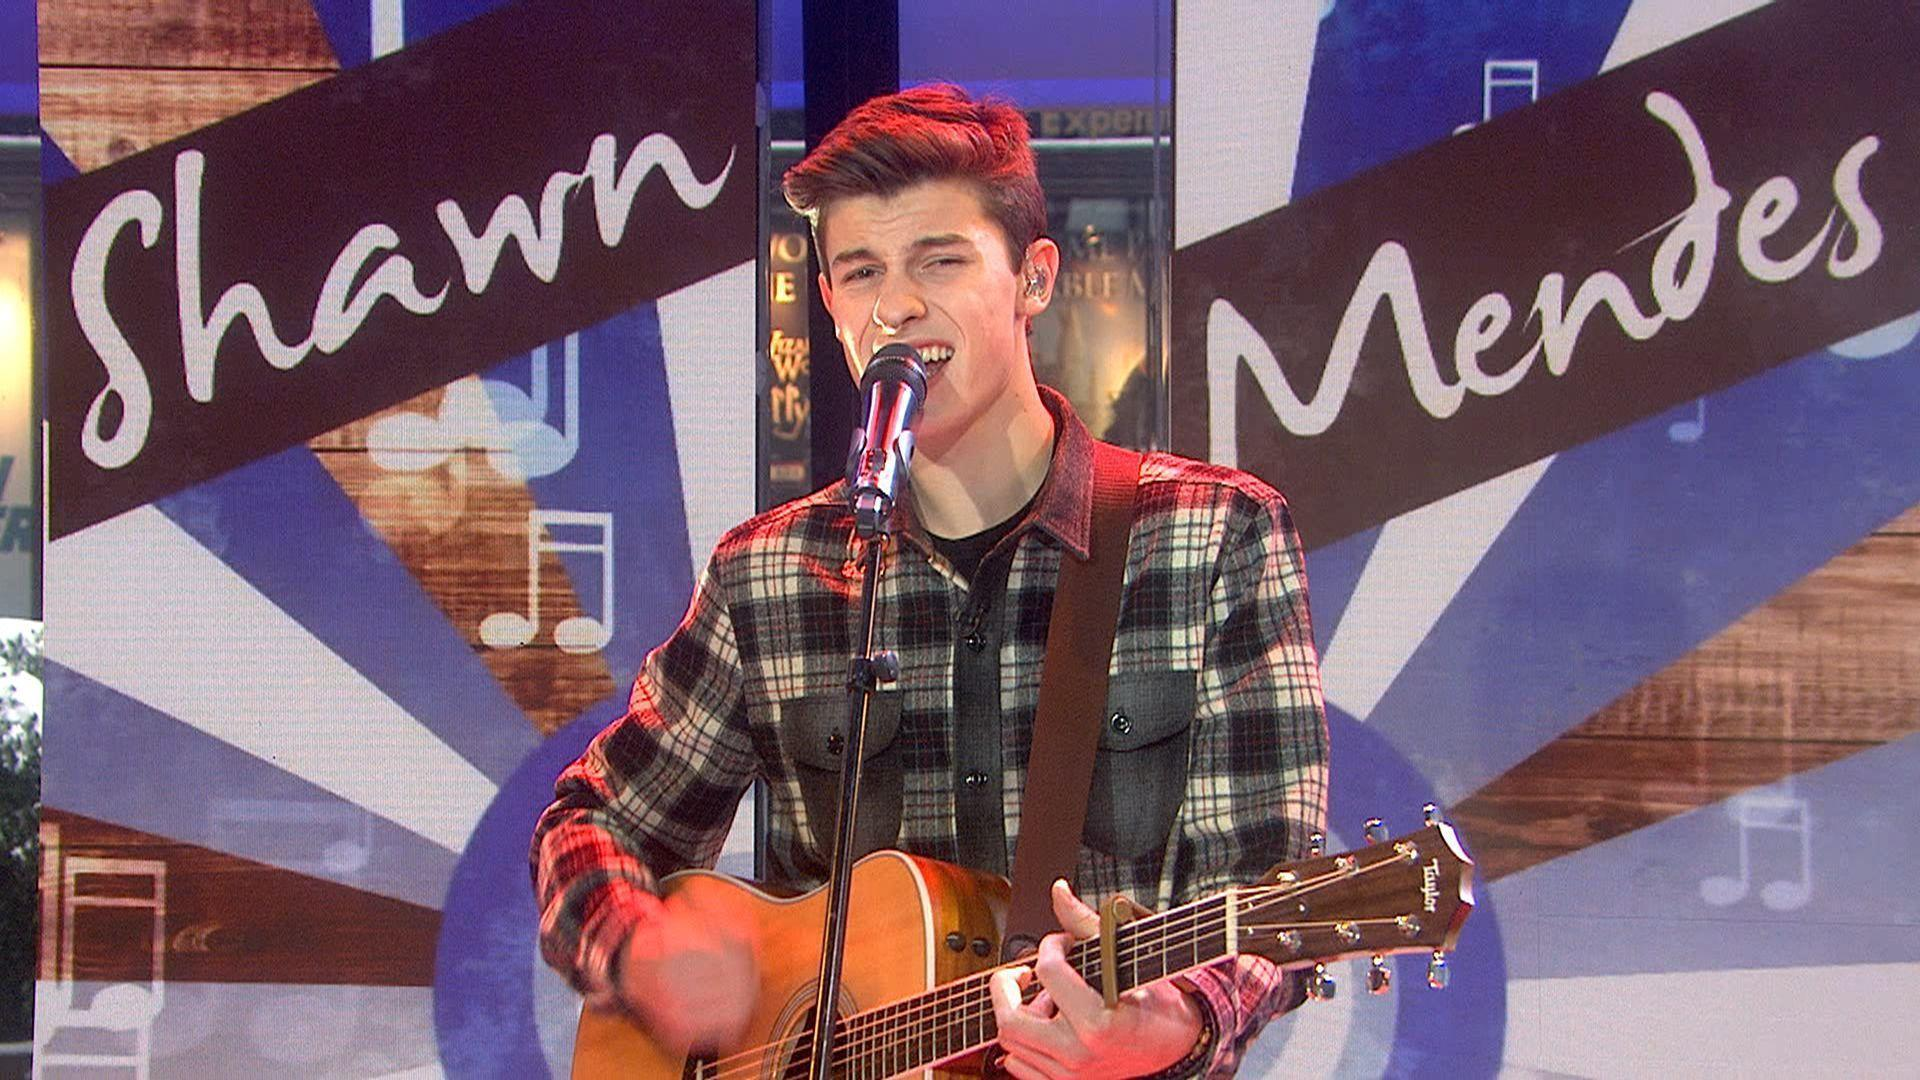 Shawn Mendes Wallpapers High Quality with High Definition